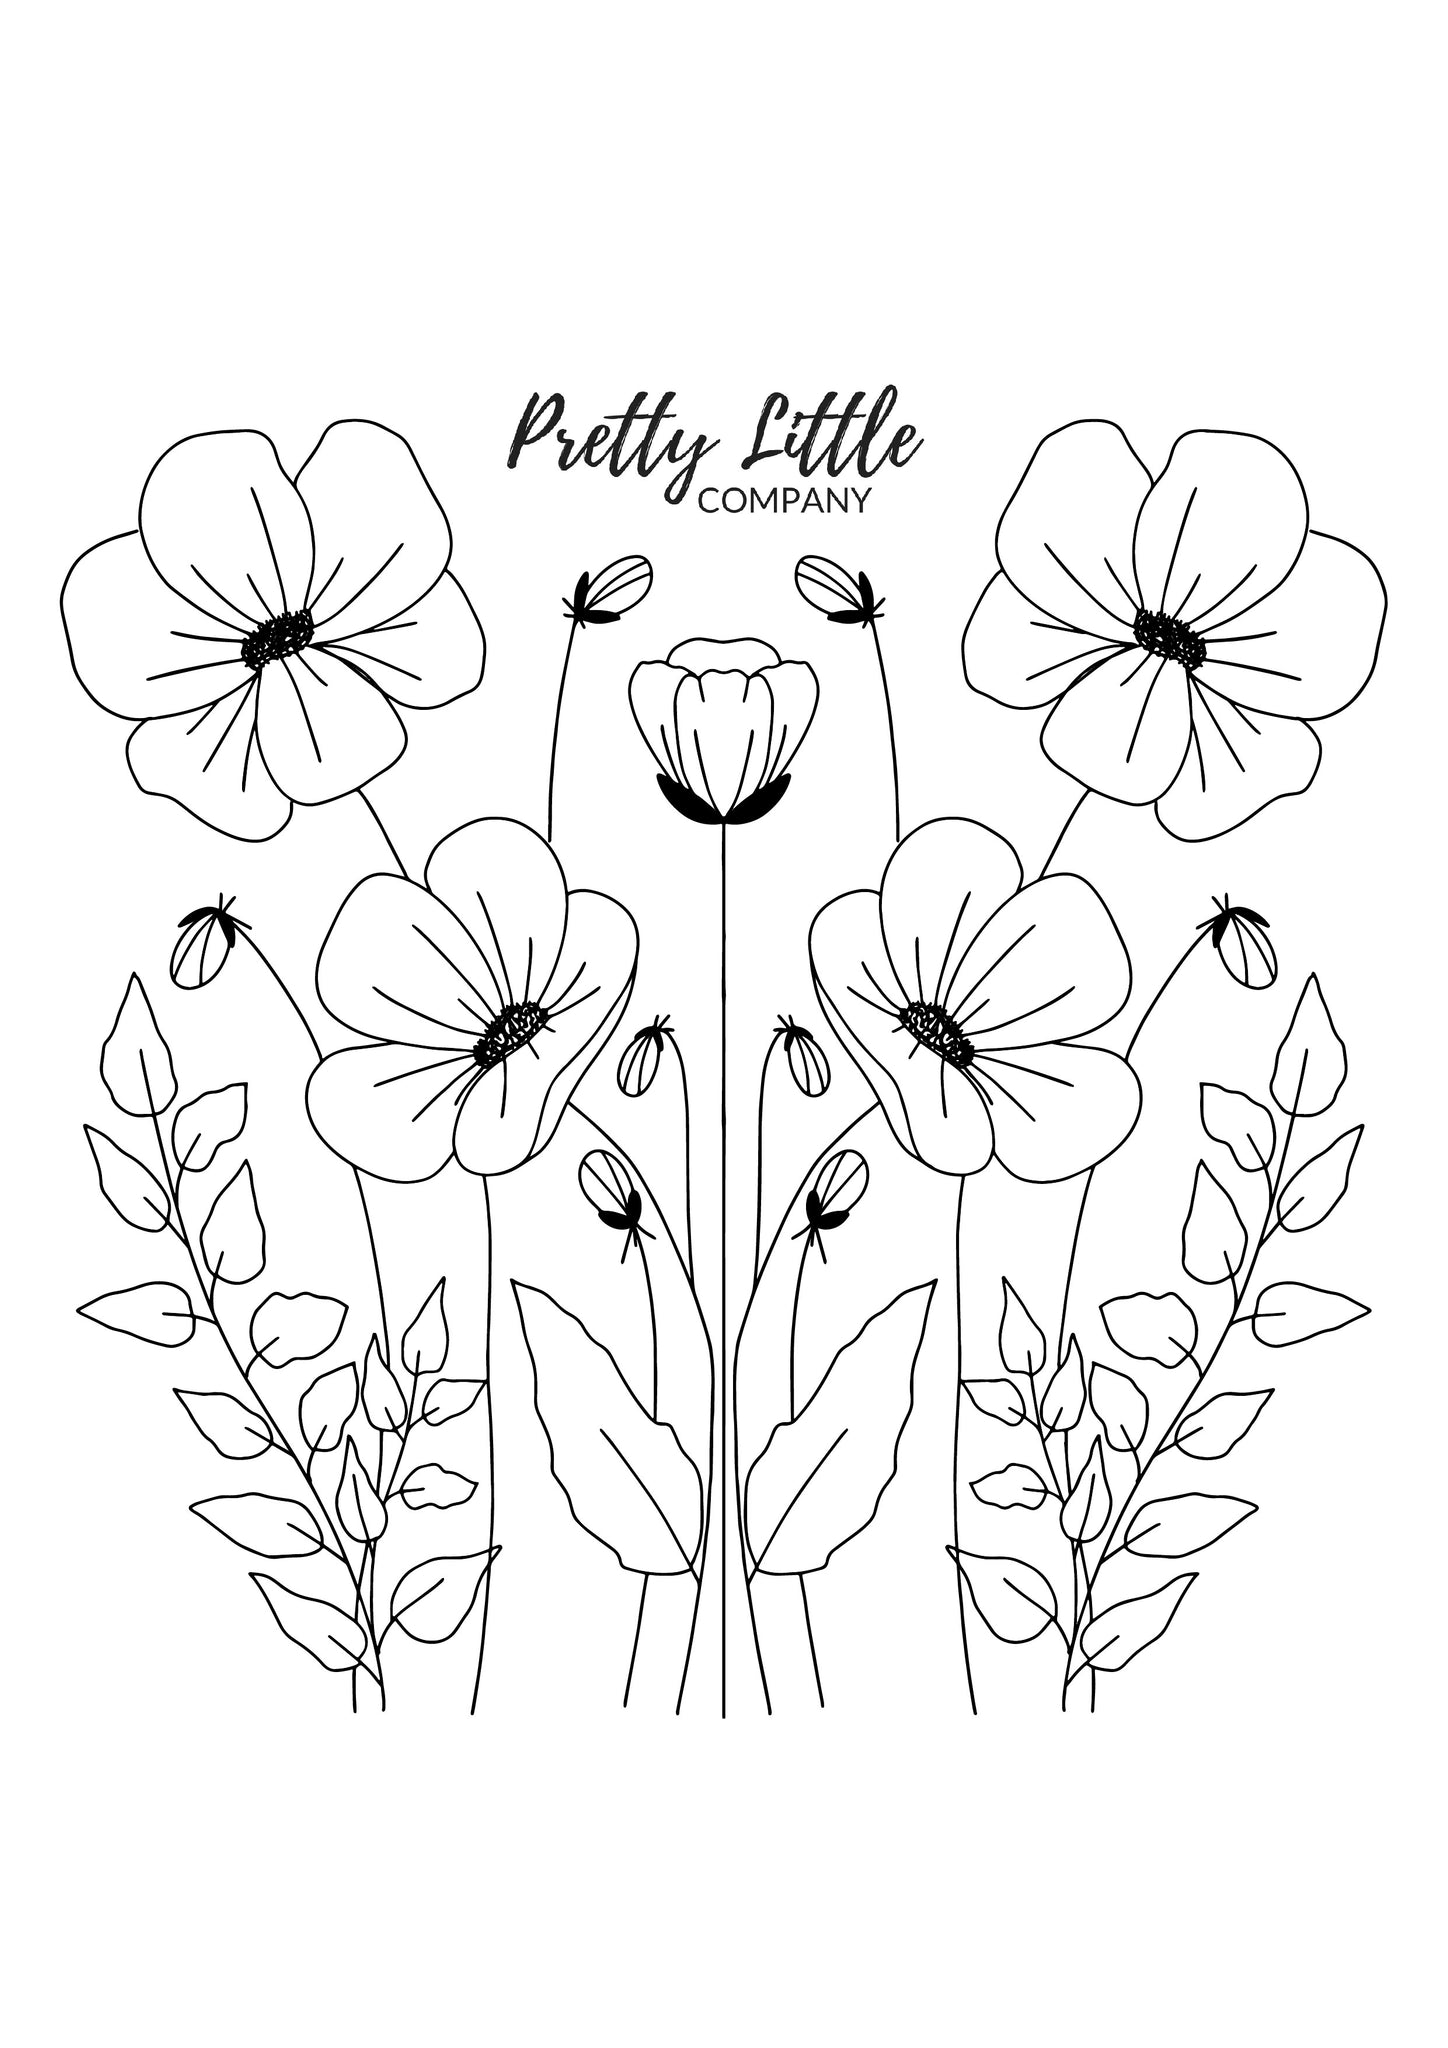 Poppy Colouring Page - Free Download